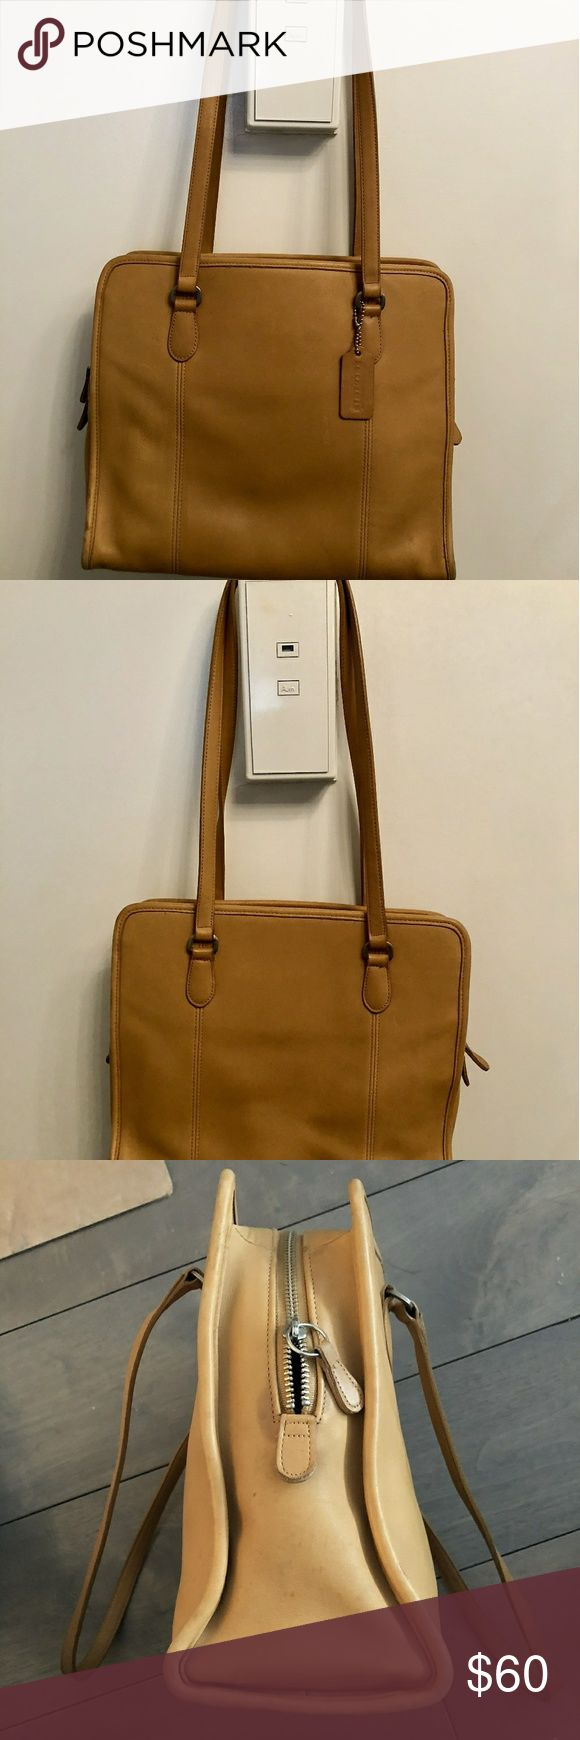 "VINTAGE COACH CLASSIC TAN TOTE! Vintage COACH Classic Tan Compartment Bag/Tote #9872   100% Authentic. Made in the USA! British Tan Leather. Zipper closure. One interior zipper pocket. Two sections. Original Coach hangtag. Measures: 9.5"" x 11.5"" x 4.5""/strap drop 12"". Bag is in great vintage condition. Normal light wear & tear to leather. Small pen mark(s) inside/ minor discolorations. Interior lining clean. Leather is supple and strong! Can fit ipad/ tablet plus more comfortably! Coach Bags"